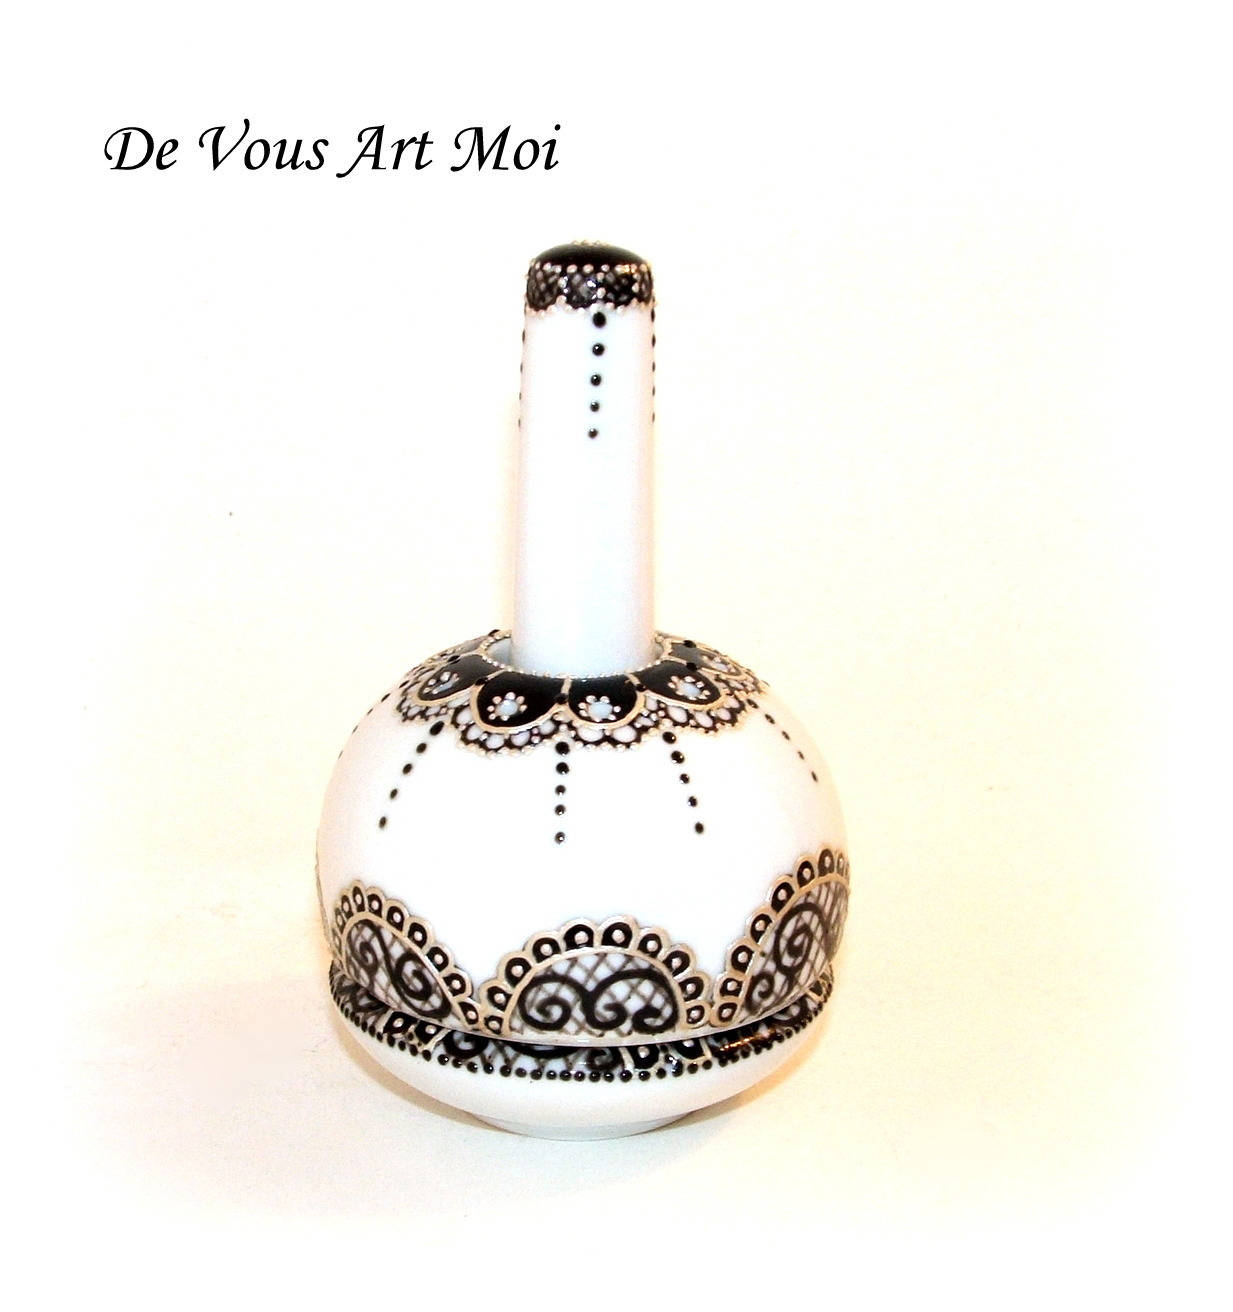 Modern Salt Pepper Shakers Salt And Pepper Shakers Handmade Duo Salt Pepper Salt Black